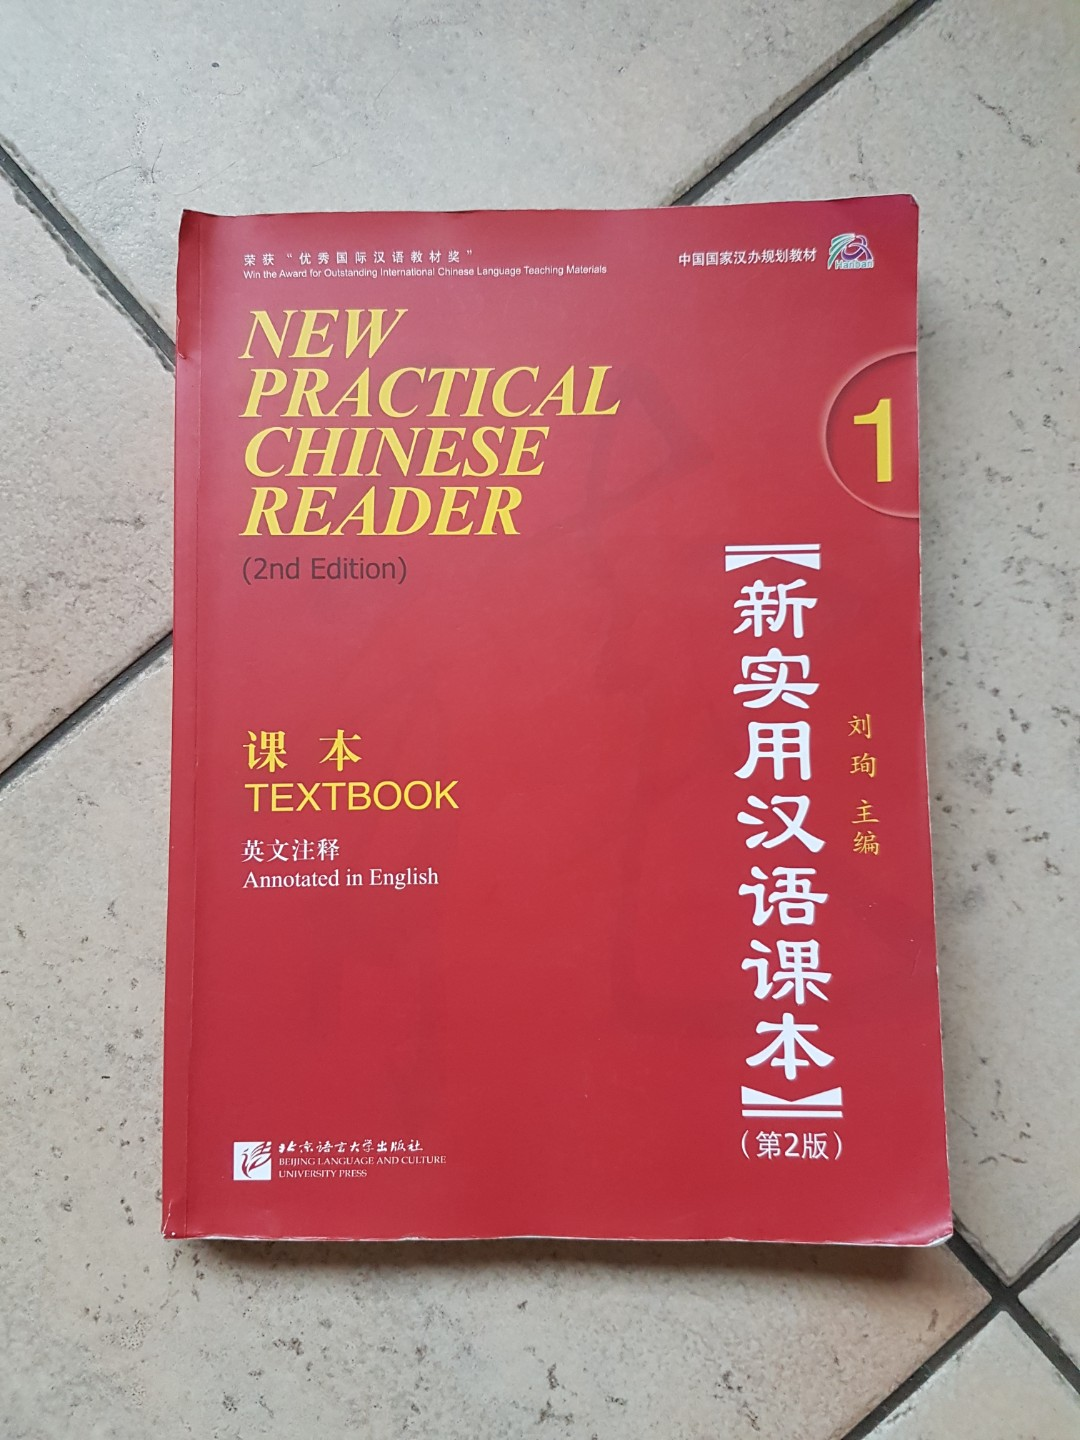 New practical chinese reader textbook books stationery textbooks photo photo photo photo fandeluxe